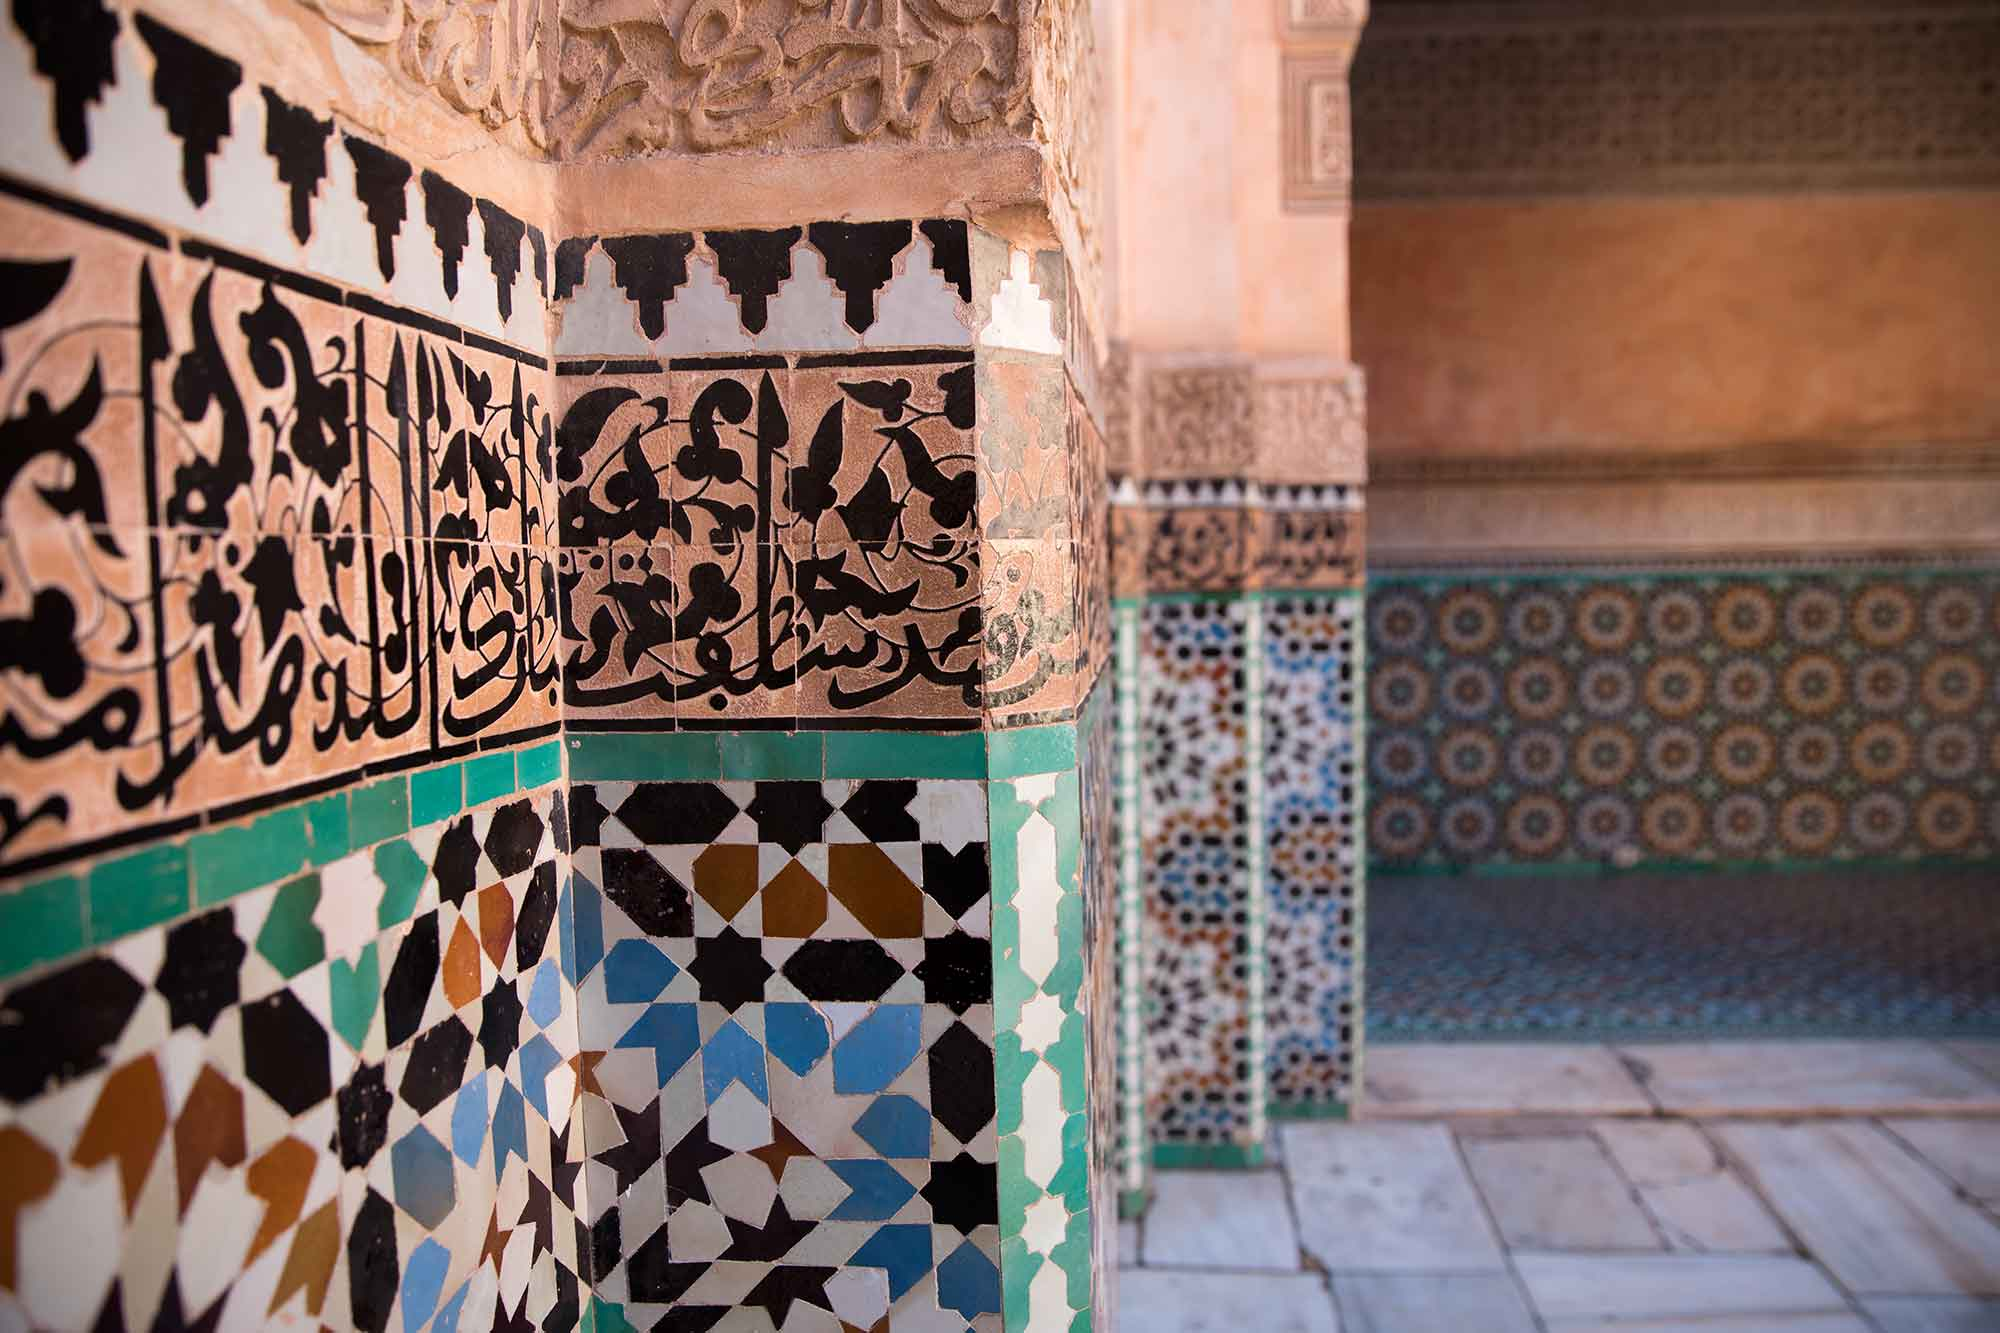 The Ben Youssef Madrasa was an Islamic college in Marrakech. It's the largest madrasa in all of Morocco. © ULLI MAIER & NISA MAIER